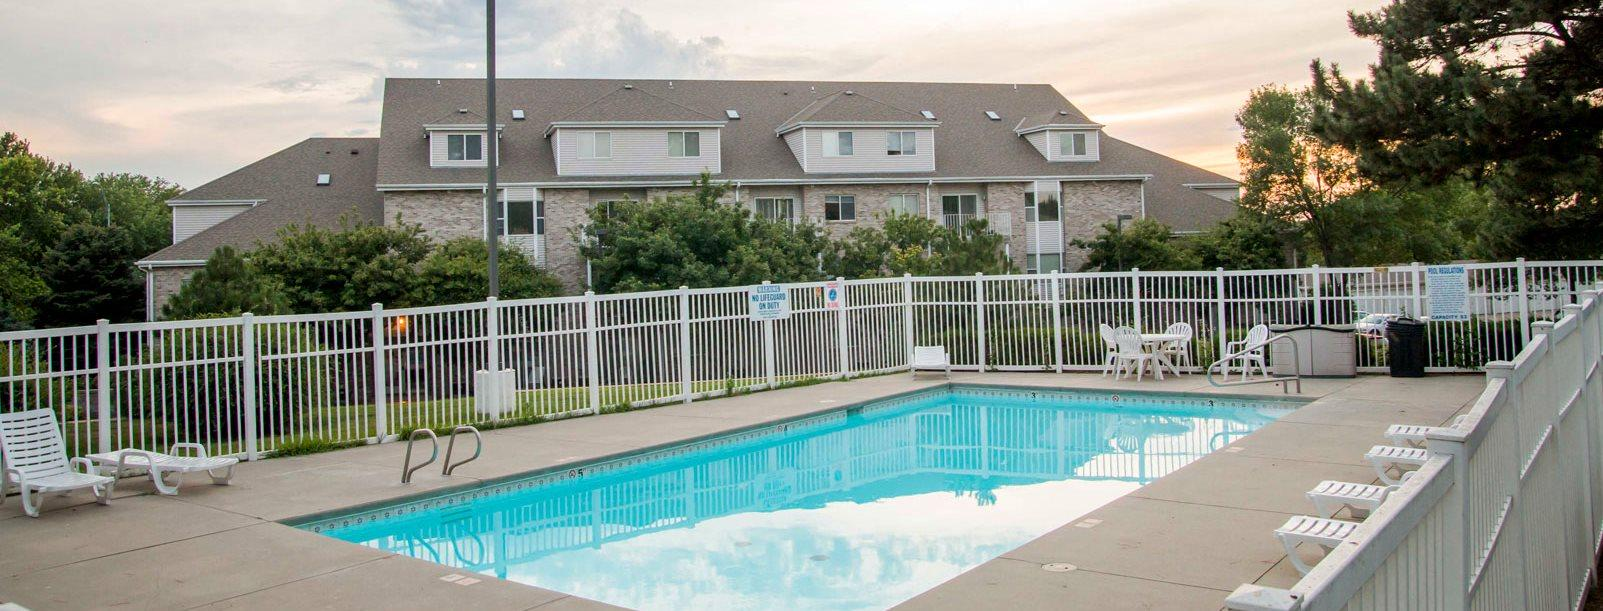 Outdoor Pool at Skyline View Apartments in Lincoln NE